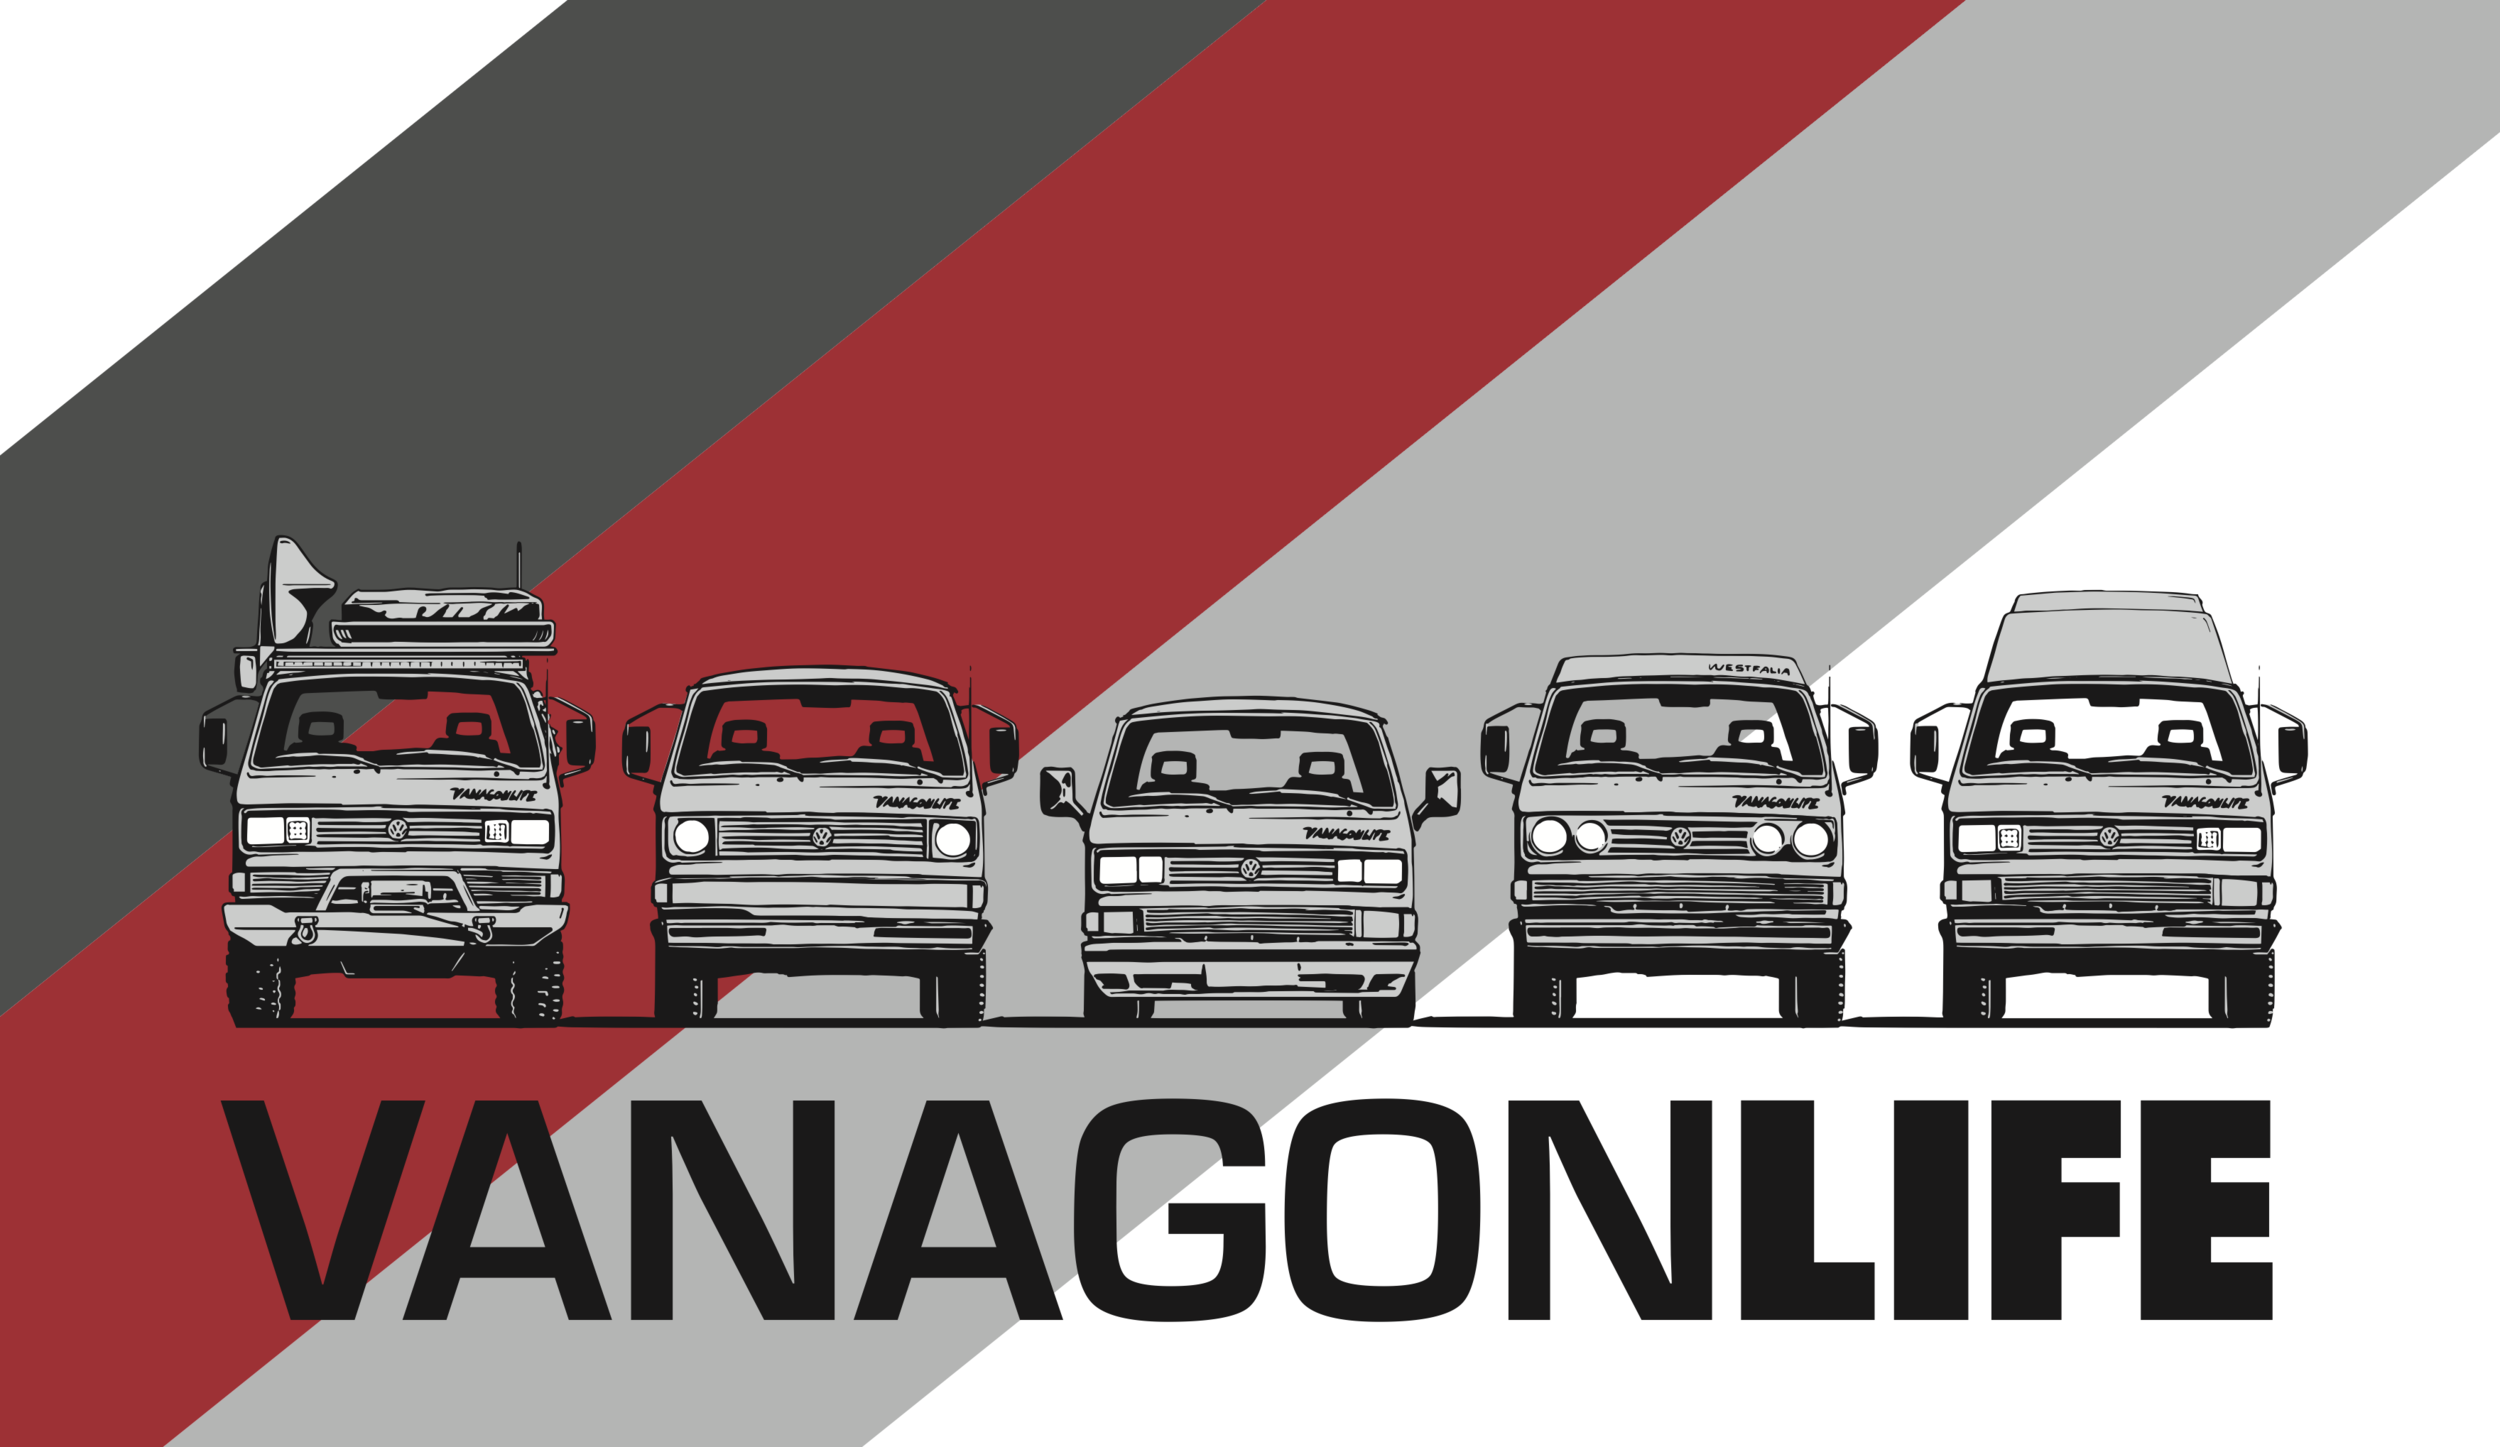 vanagonlife business card image-final.png